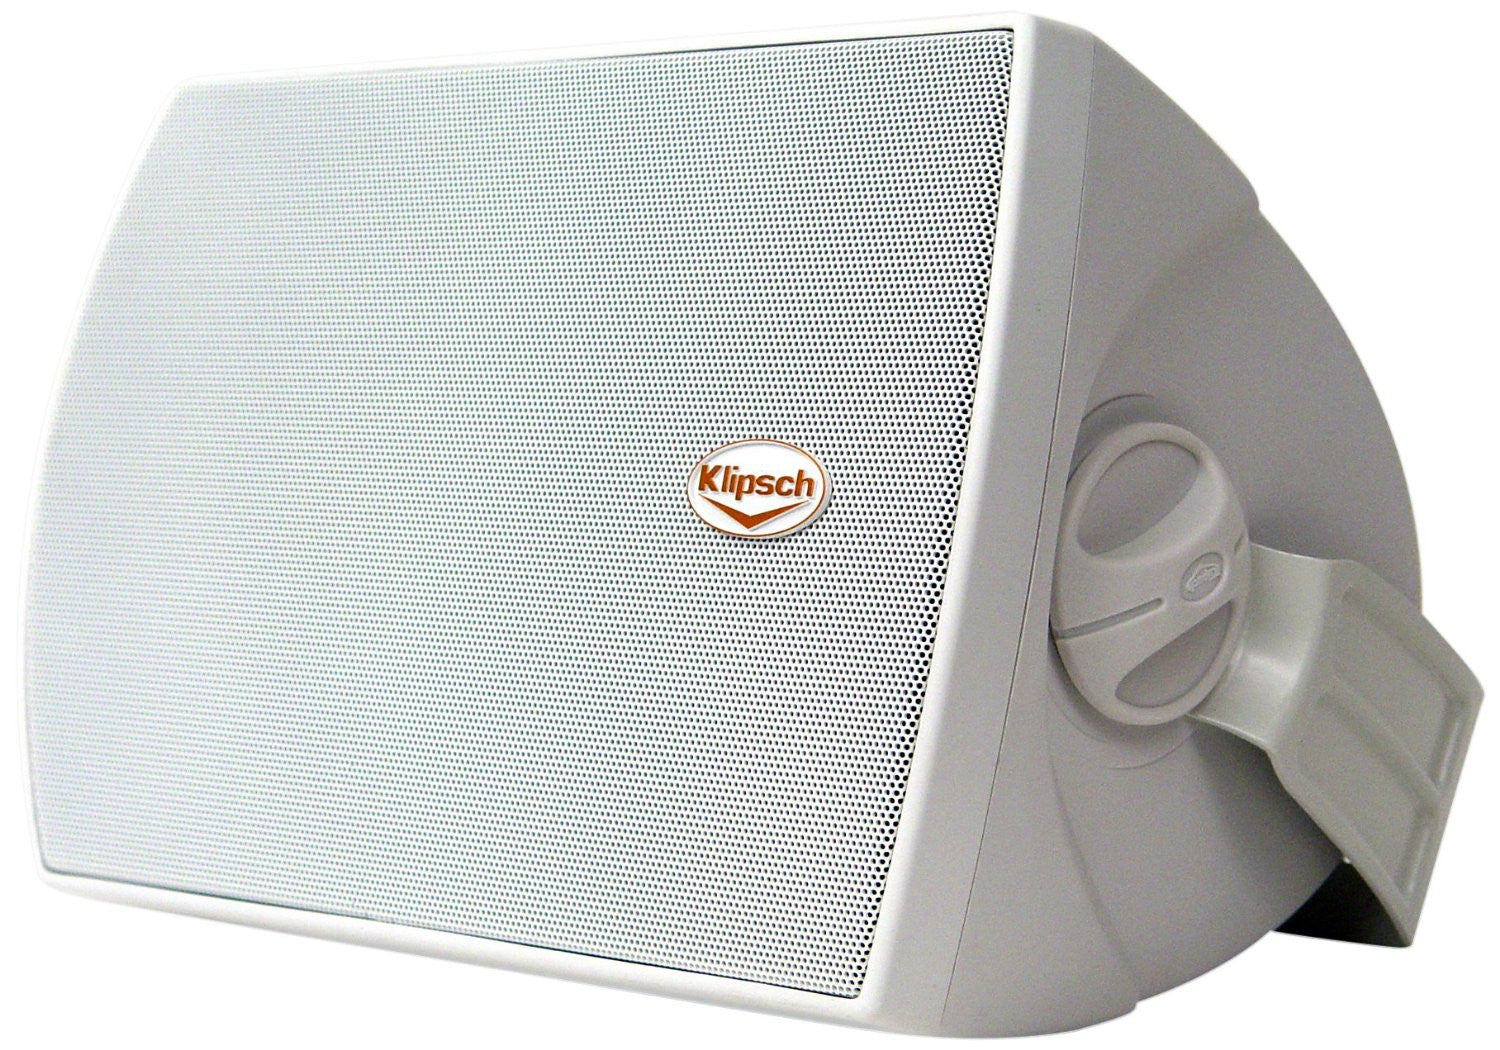 Klipsch AW525 Reference All-Weather Outdoor Speaker - PAIR (White)